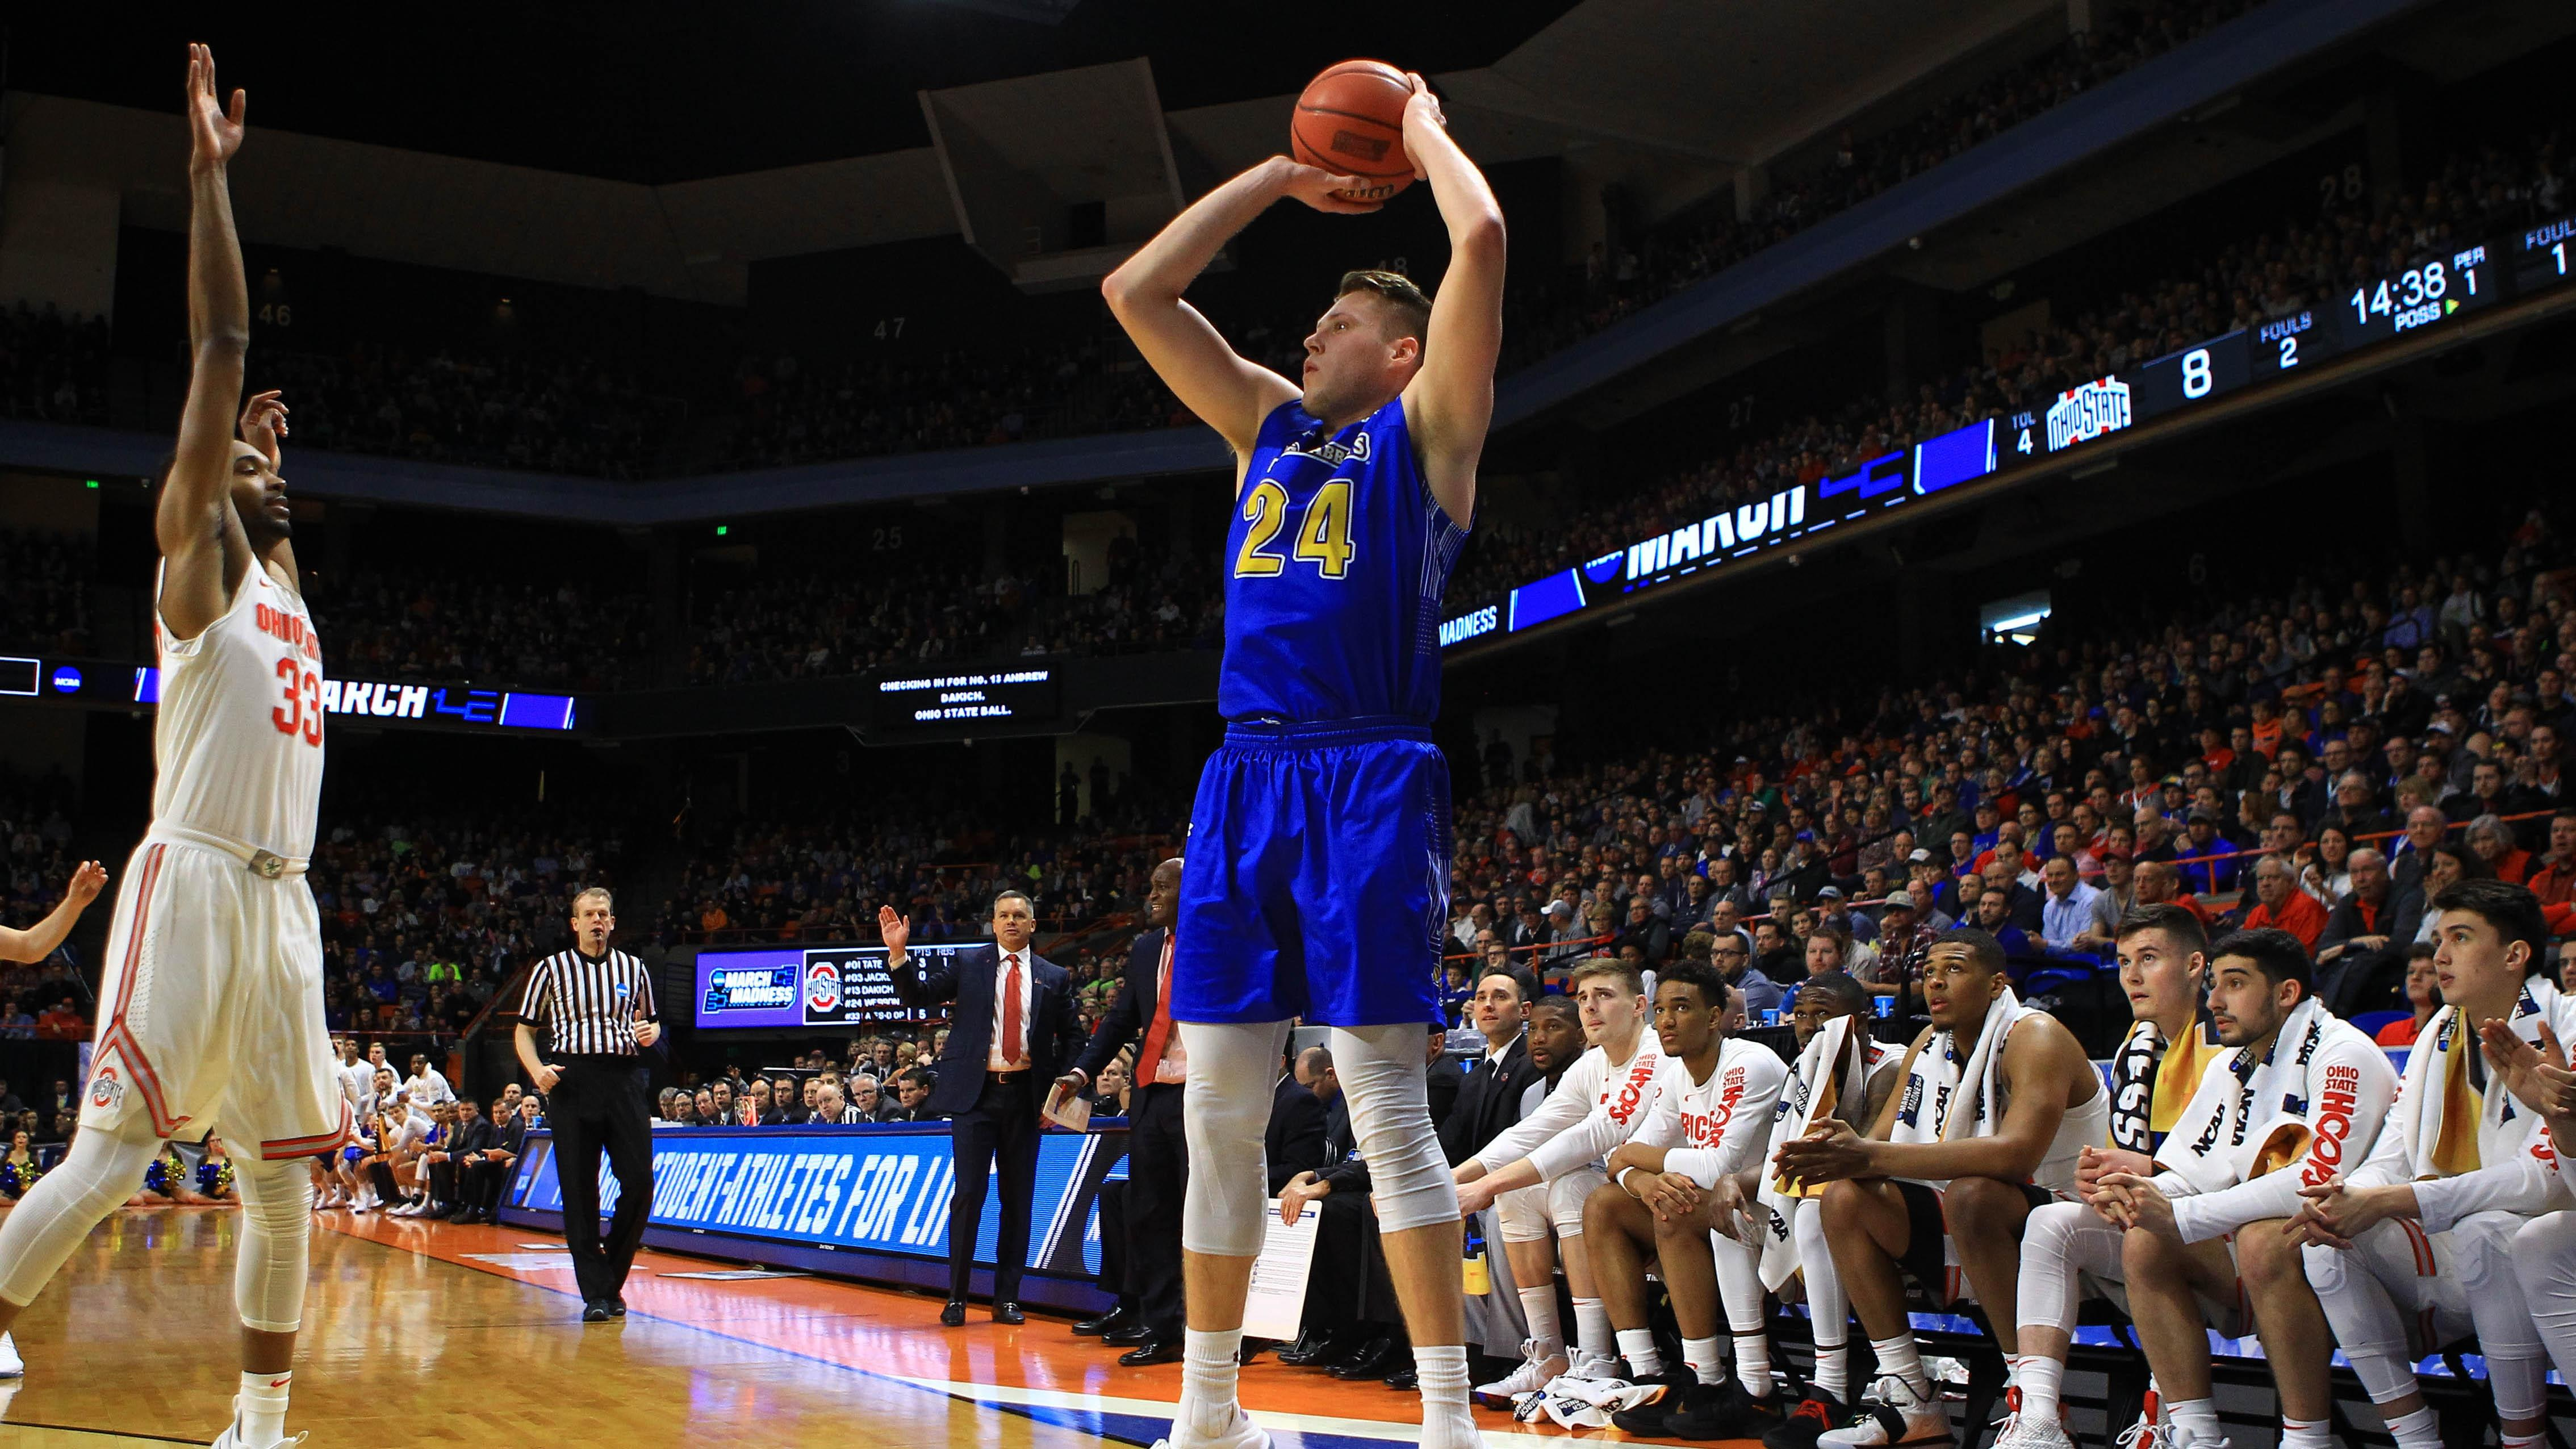 South Dakota State's Mike Daum takes a three